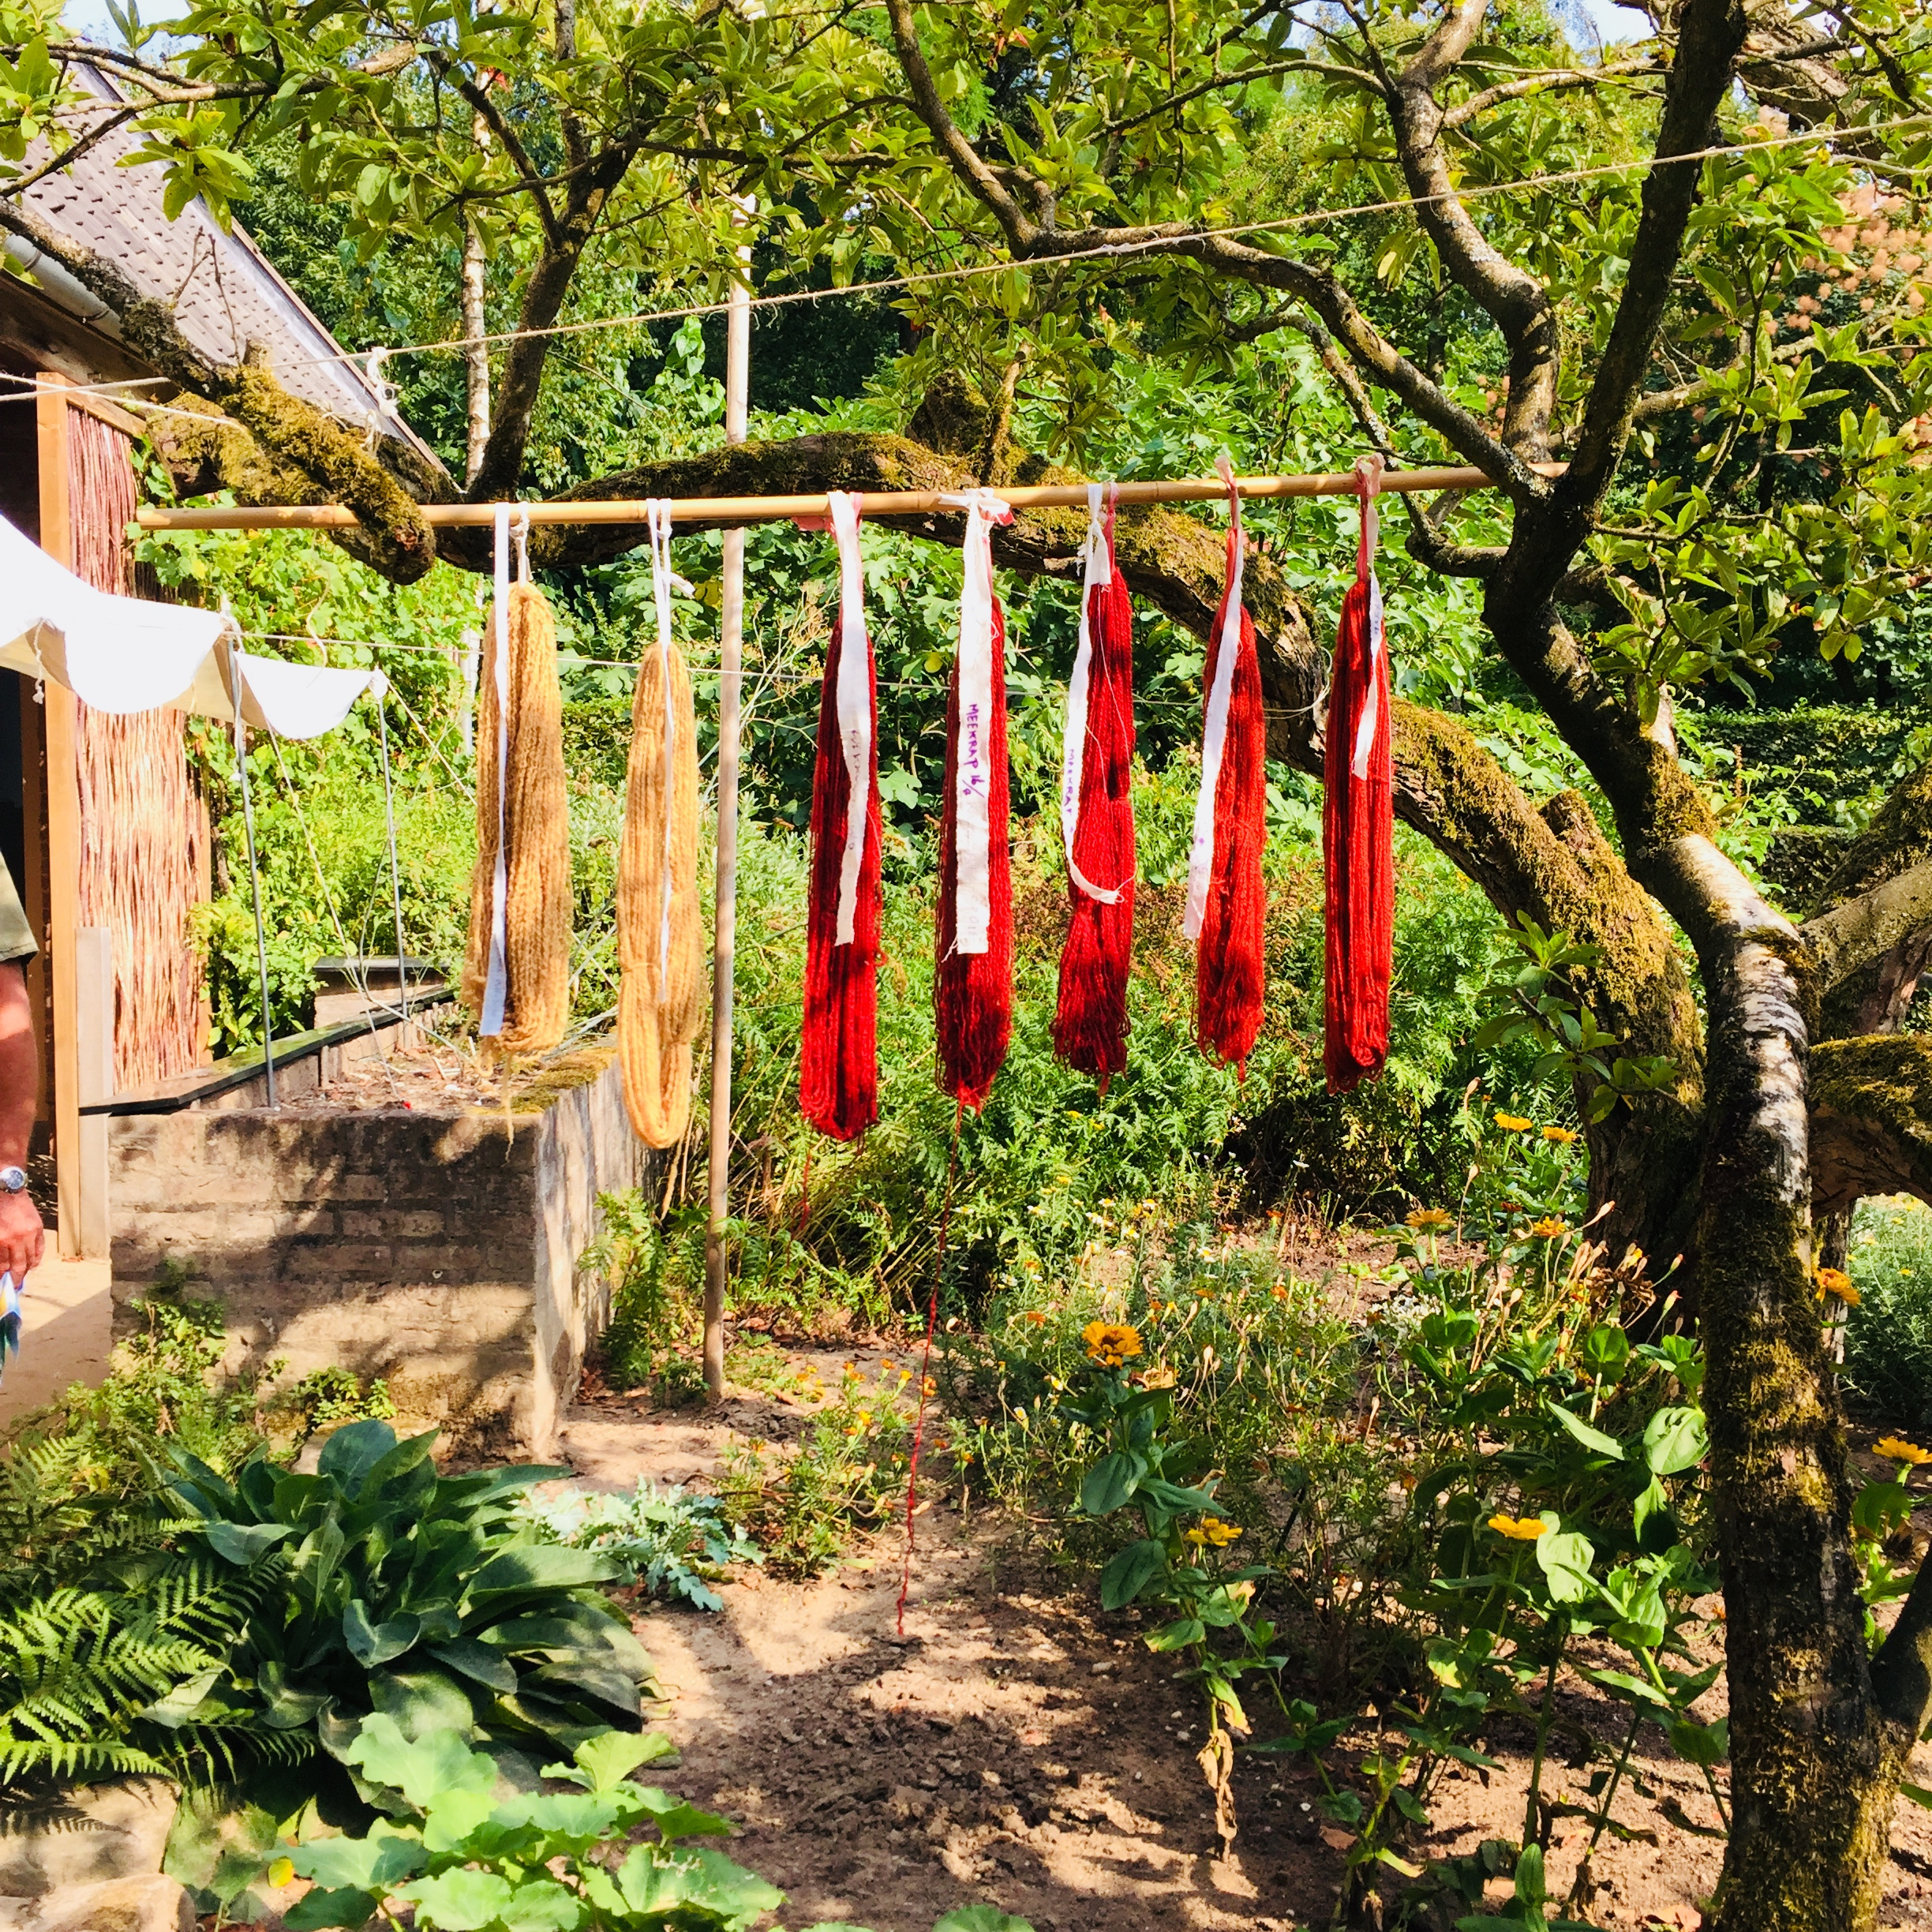 Dyed wools drying in the tree.jpg